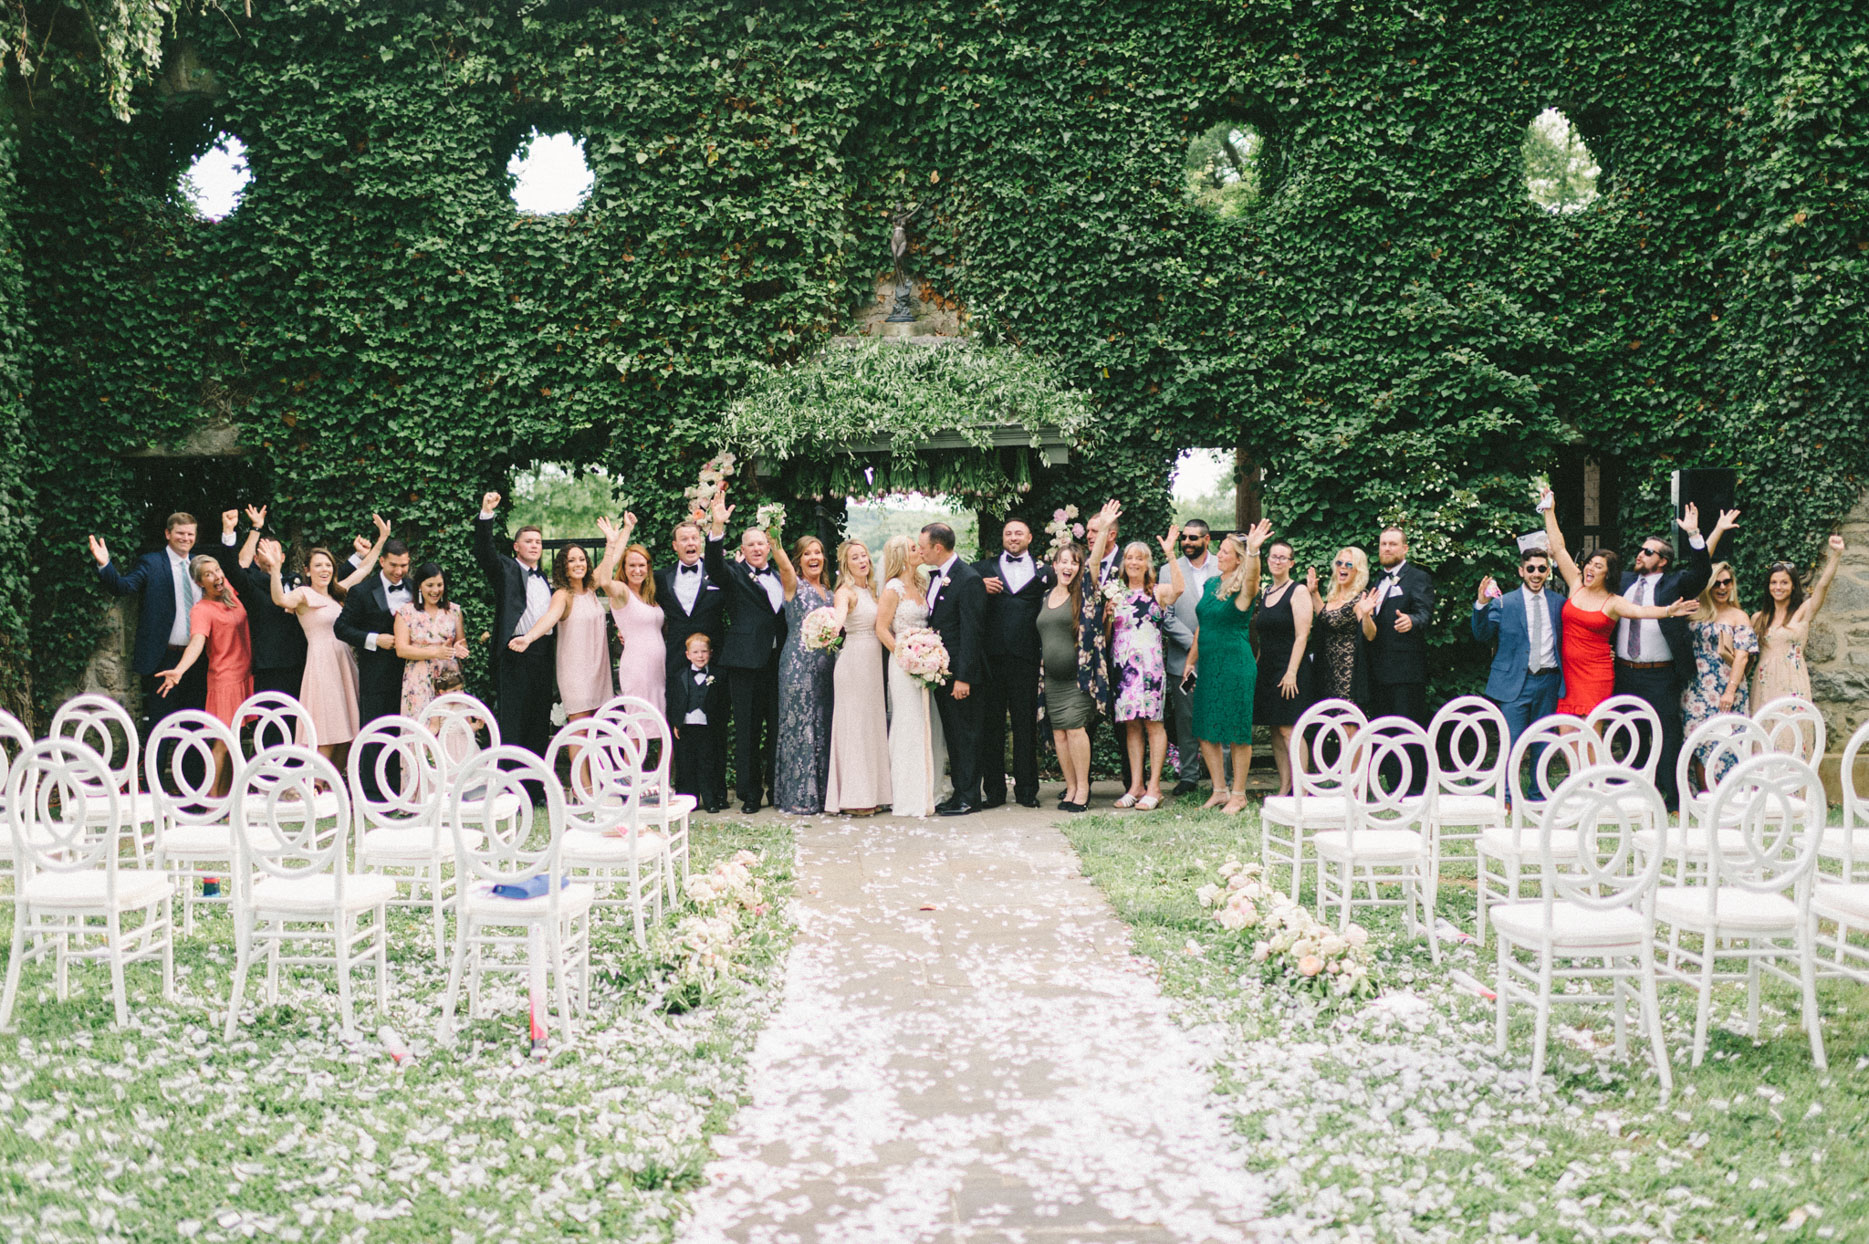 wedding guests group photo in front of greenery wall